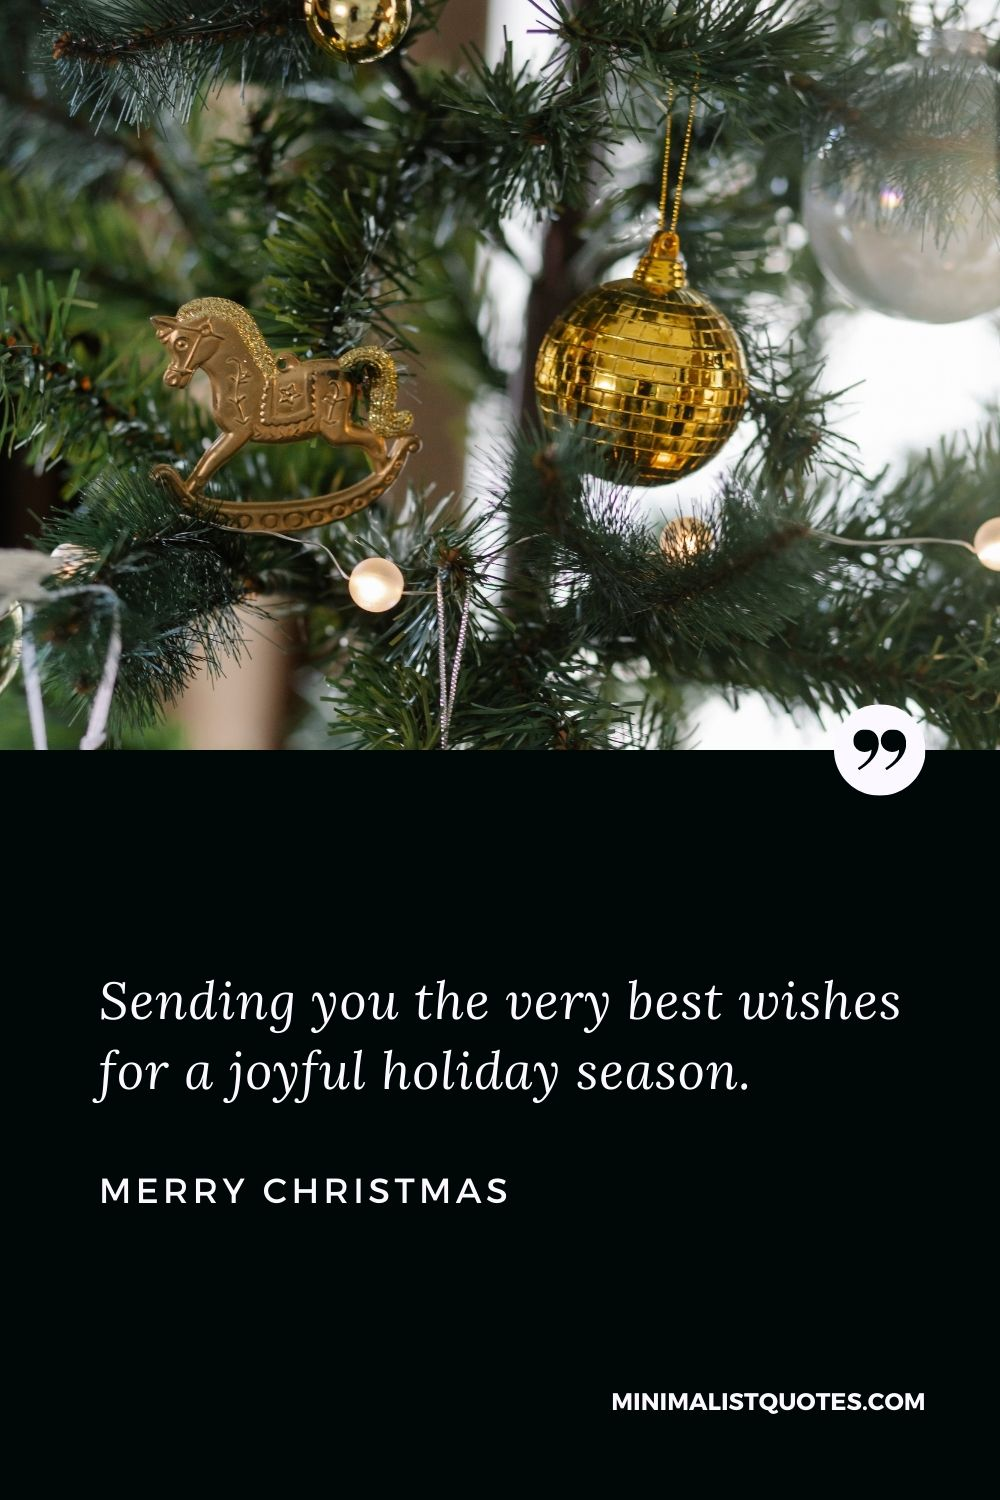 Merry Christmas Wish - Sending you the very best wishes for a joyful holiday season.